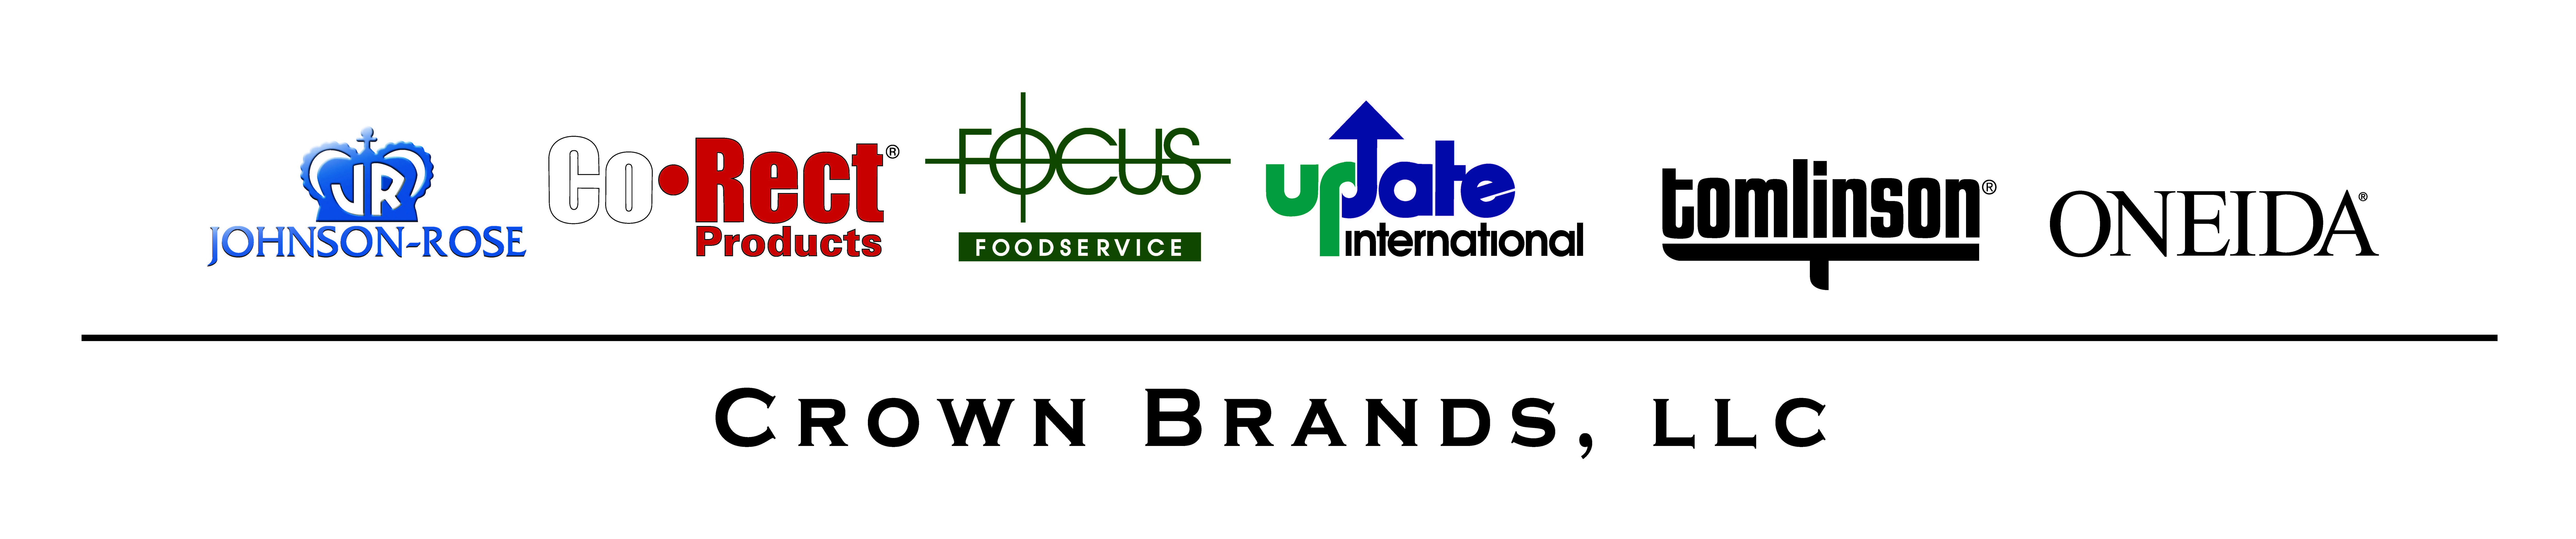 Crown Brands Group logos